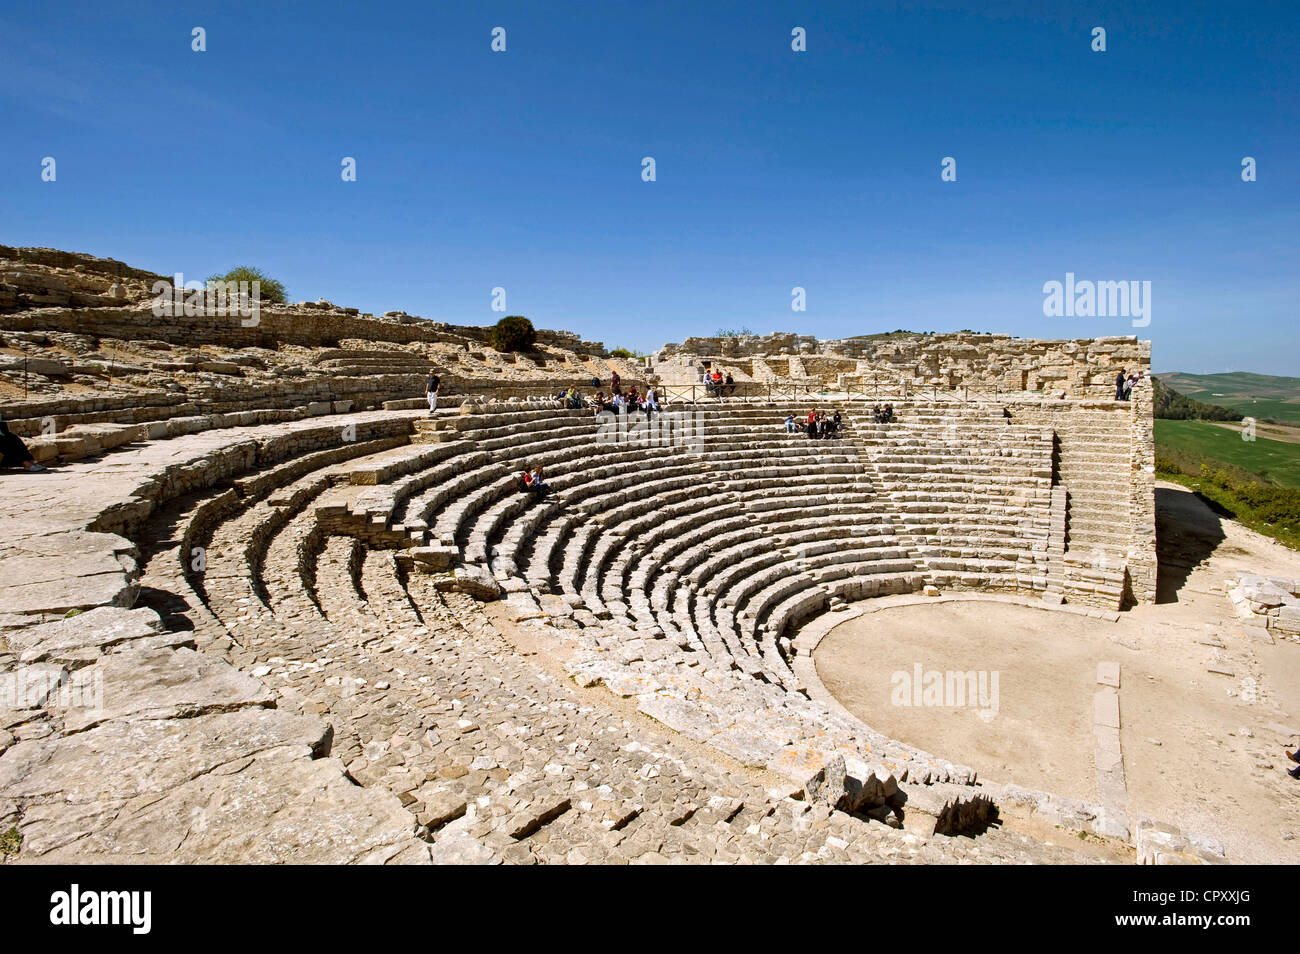 Italy, Sicily, Segesta archeological site, Antic theatre built in the 3th century BC - Stock Image